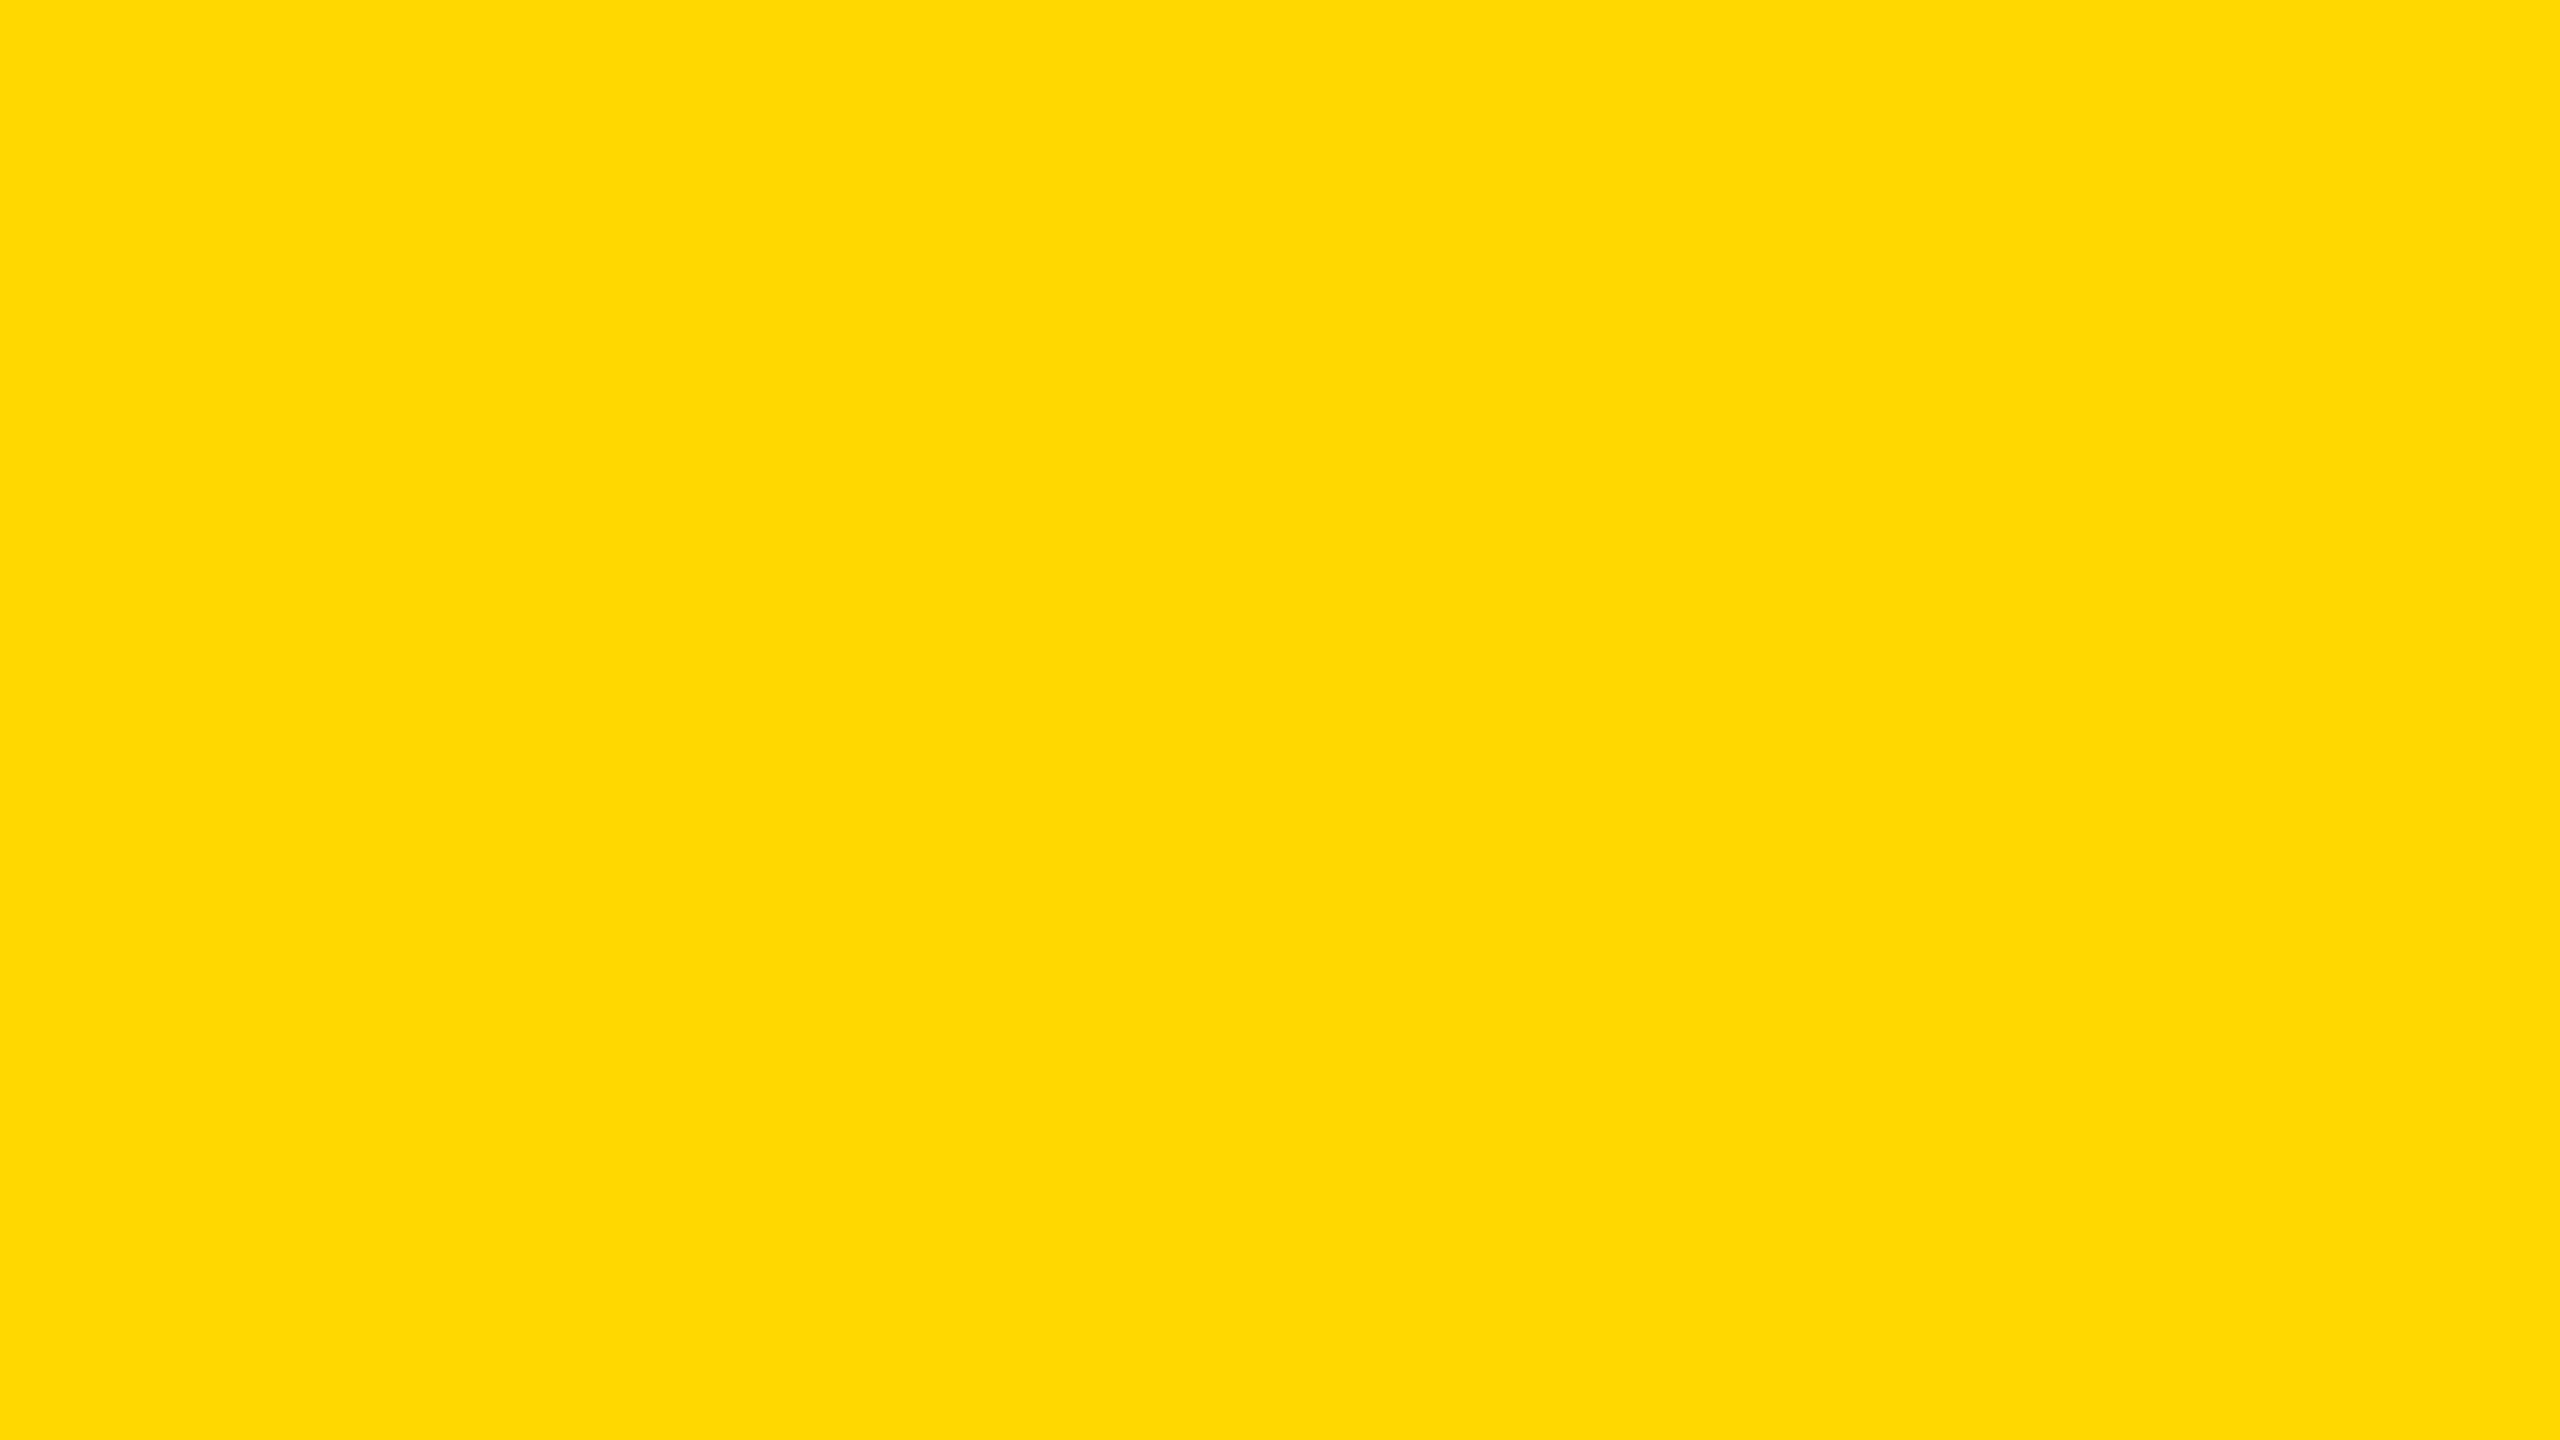 Yellow Backgrounds  Wallpaper Cave